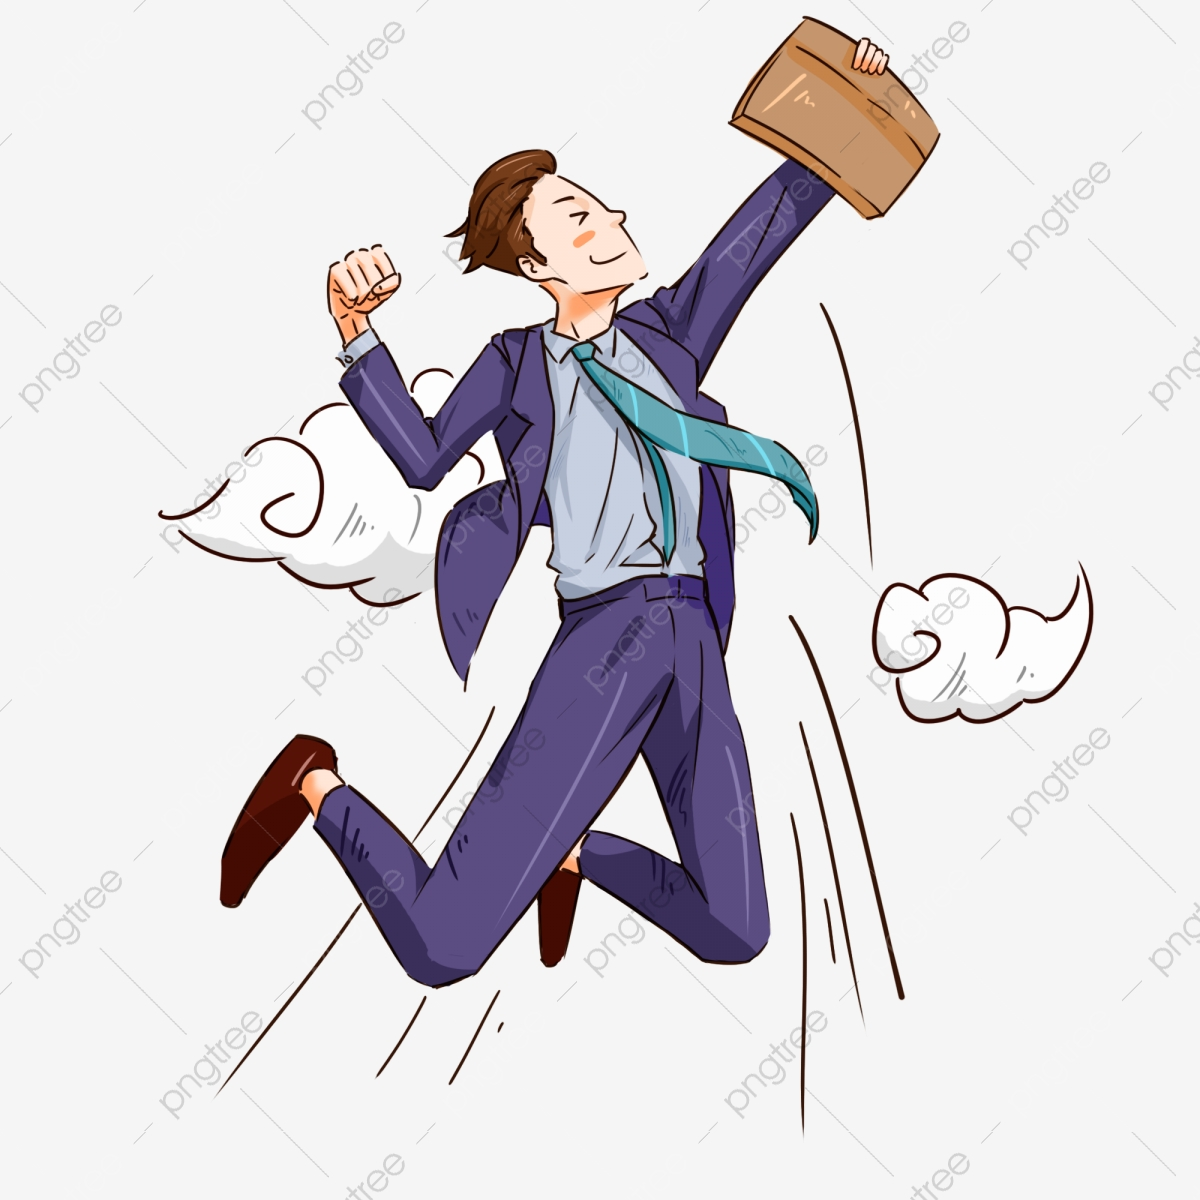 cartoon recruiting success person illustration recruiting successful characters inspirational blue suits png transparent clipart image and psd file for free download https pngtree com freepng cartoon recruiting success person illustration 4763094 html